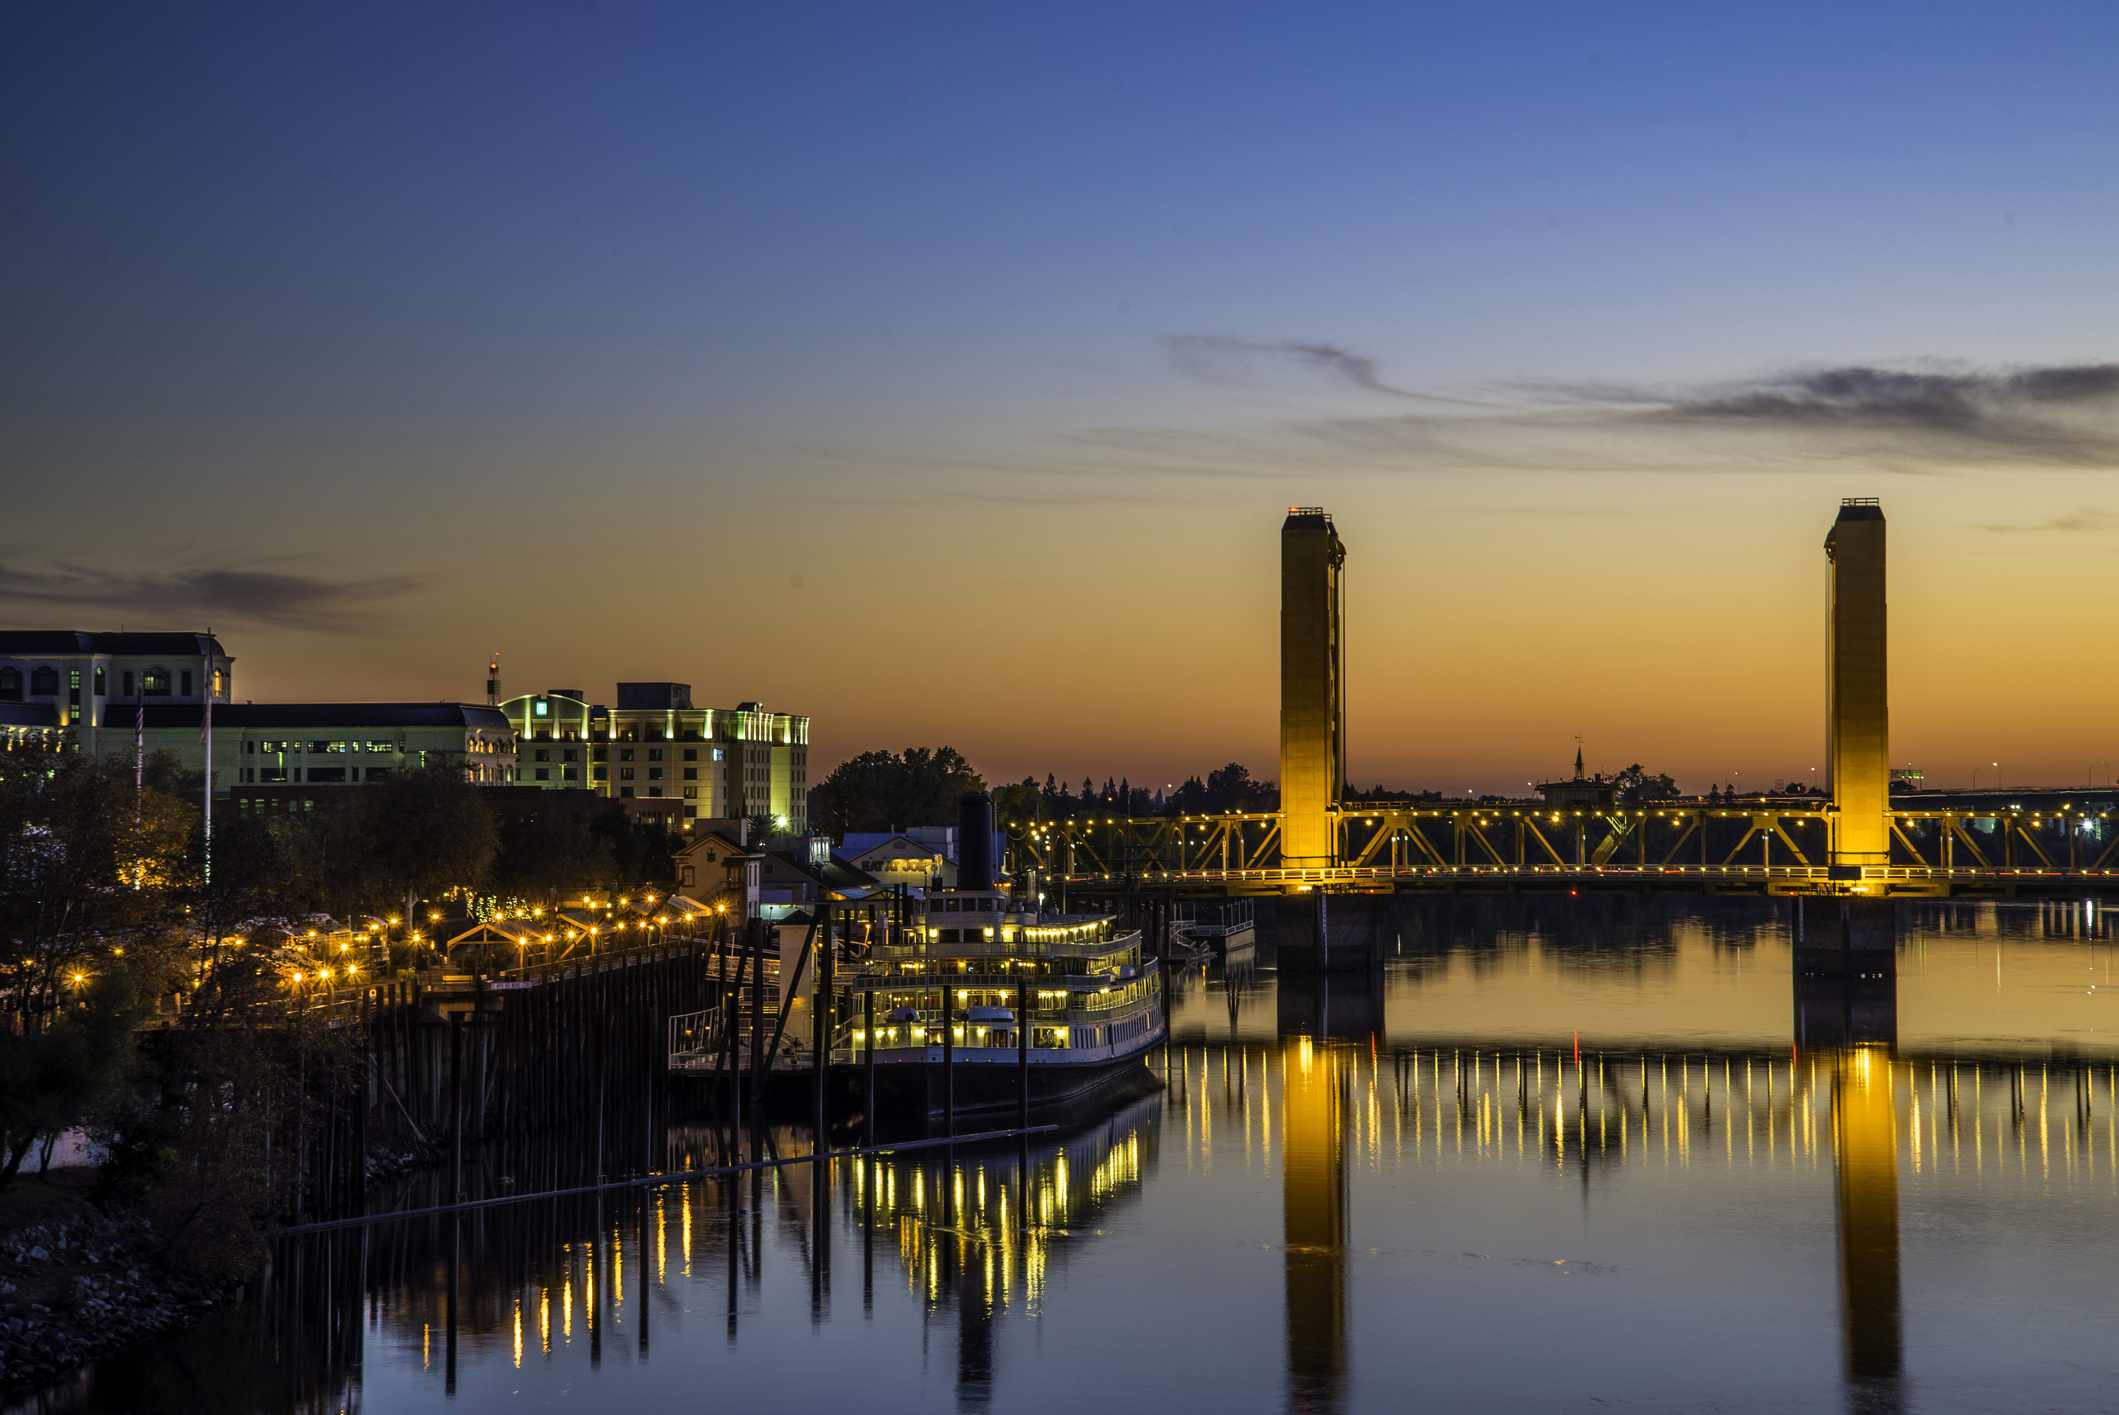 The waterfront and the Tower Bridge at the Sacramento River at sunset